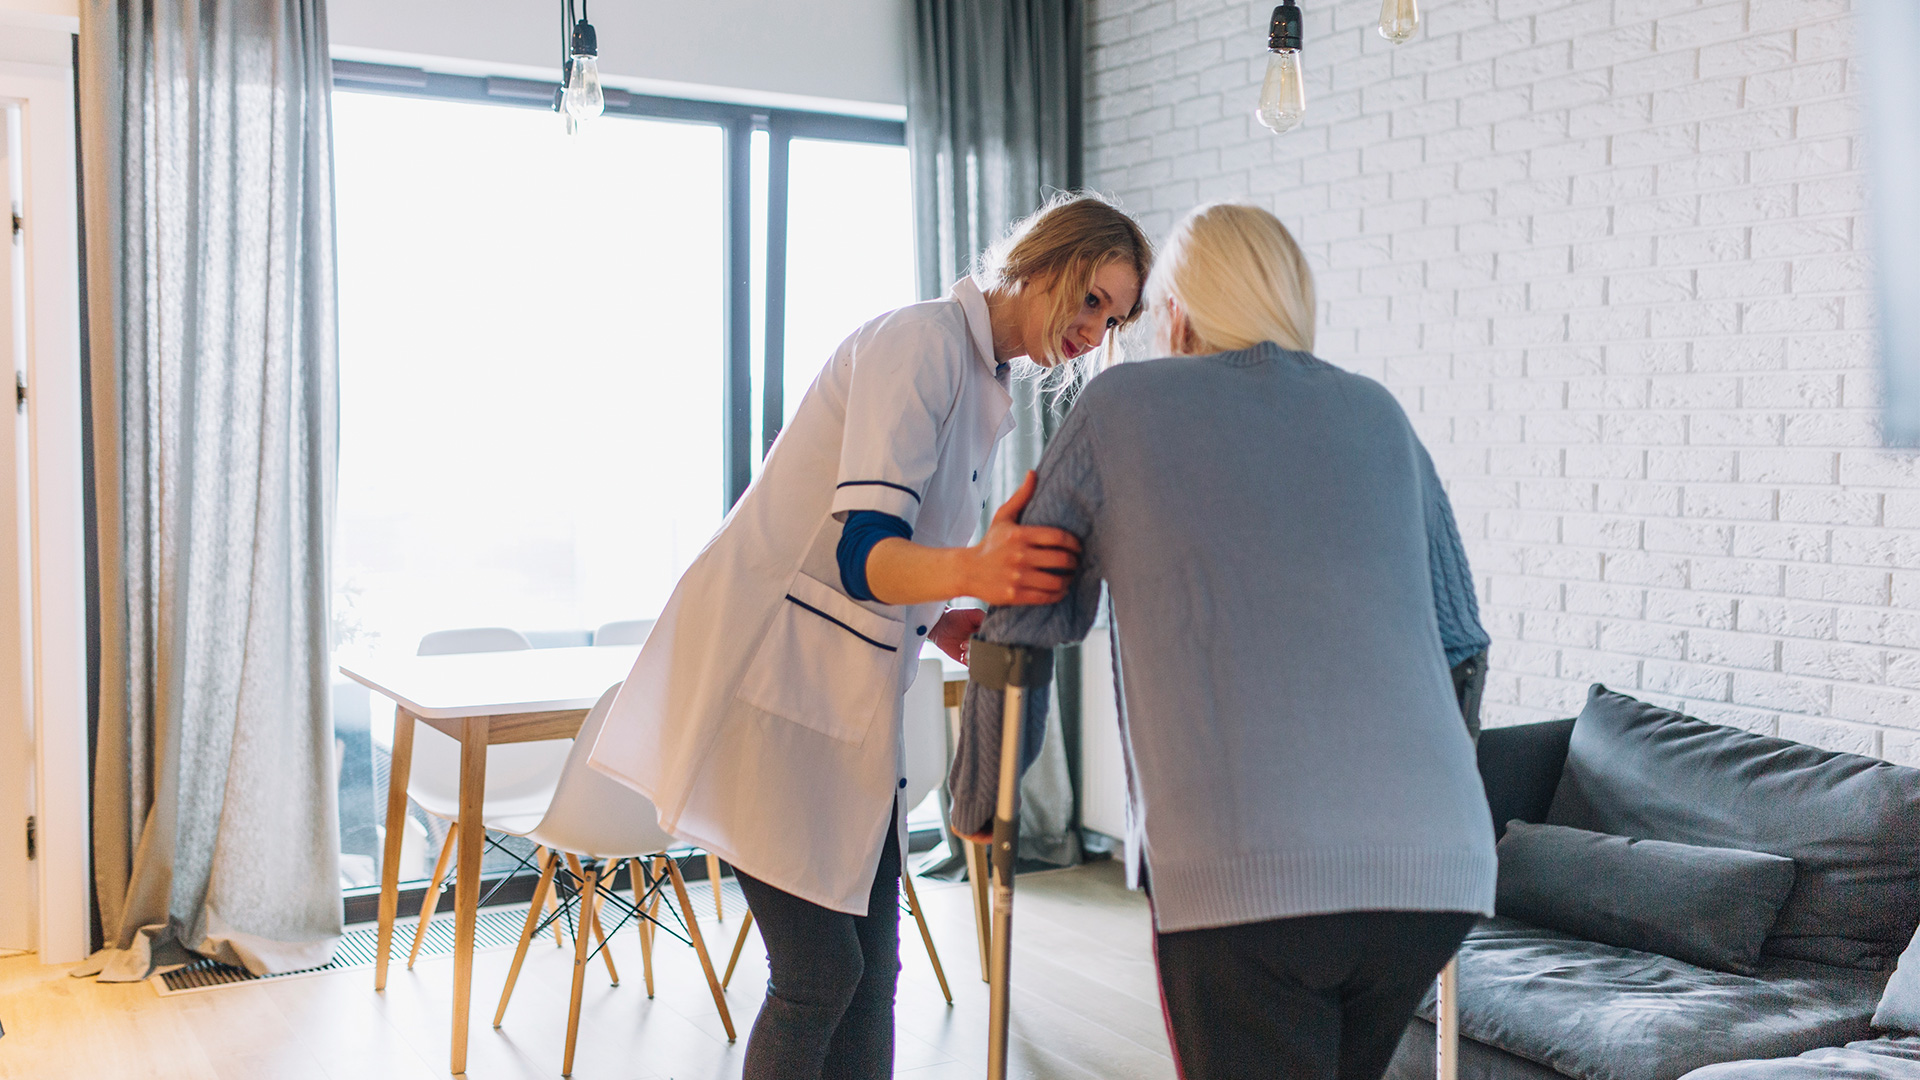 With a tailored skilled nursing plan of action including restorative nursing, we'll ensure that you work towards your recovery goals in a healthy manner.